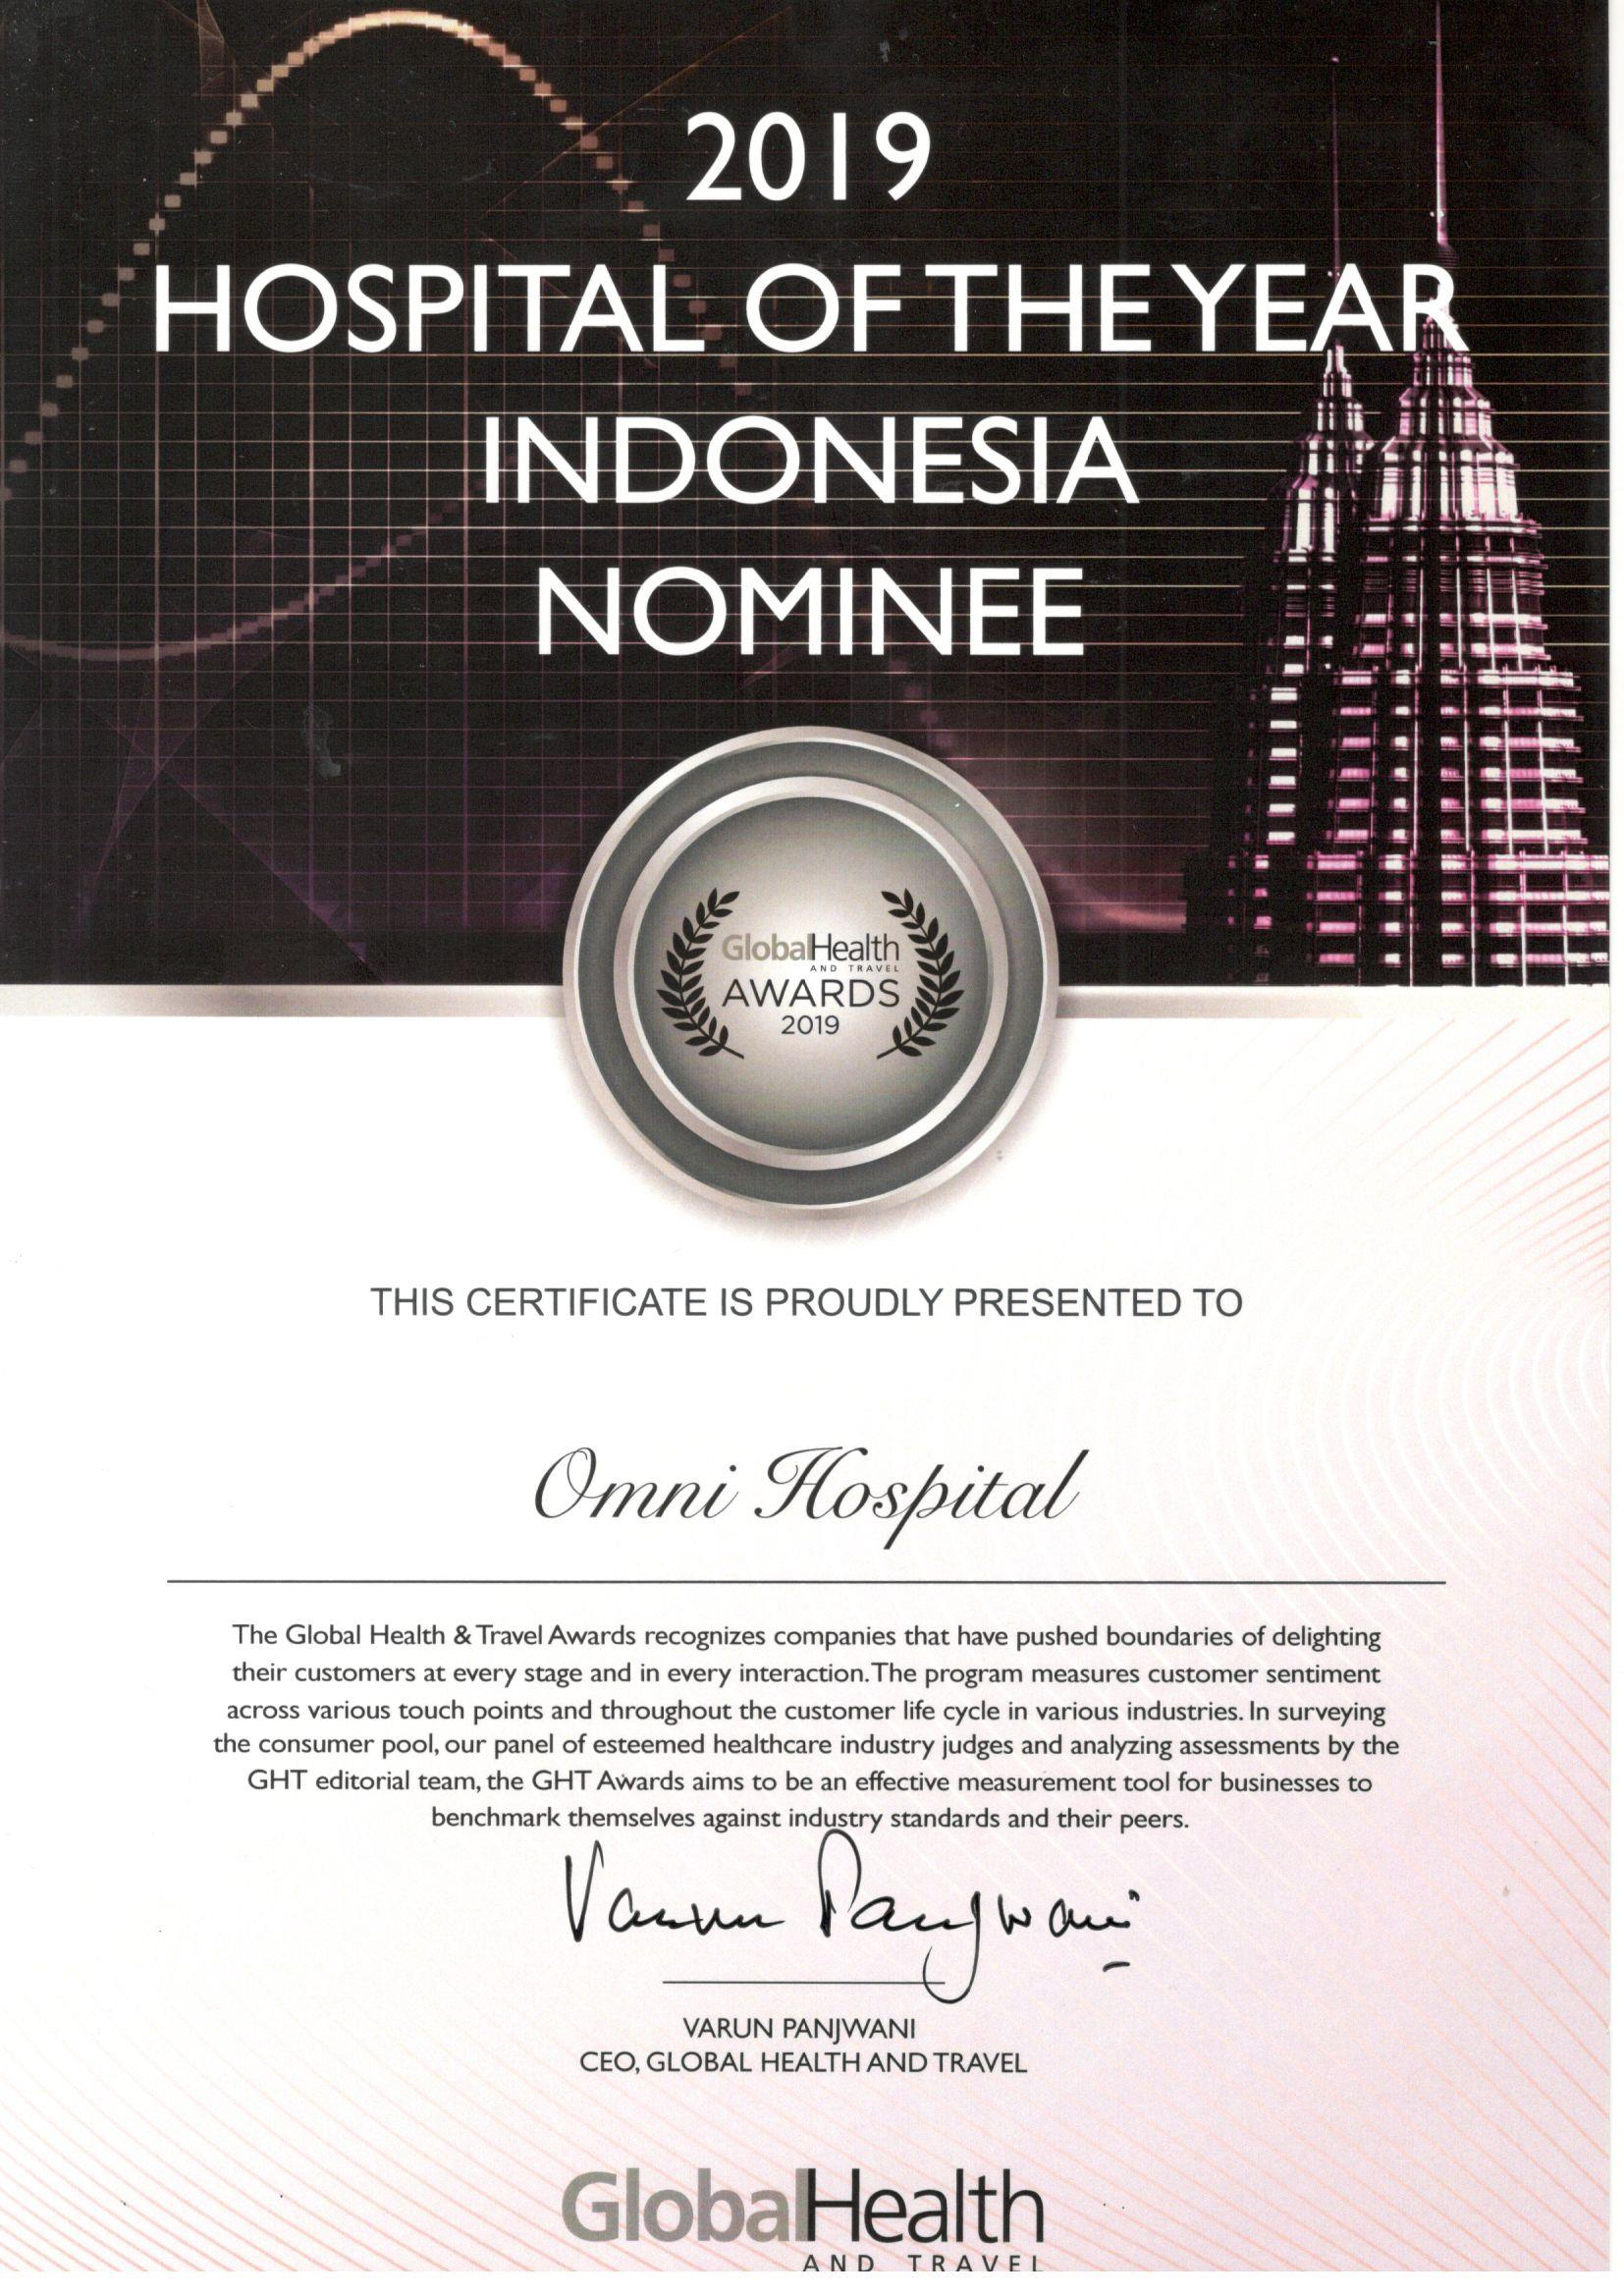 Hospital of The Year Indonesia Nominee - 2019 APAC Healthcare & Medical Tourism Award